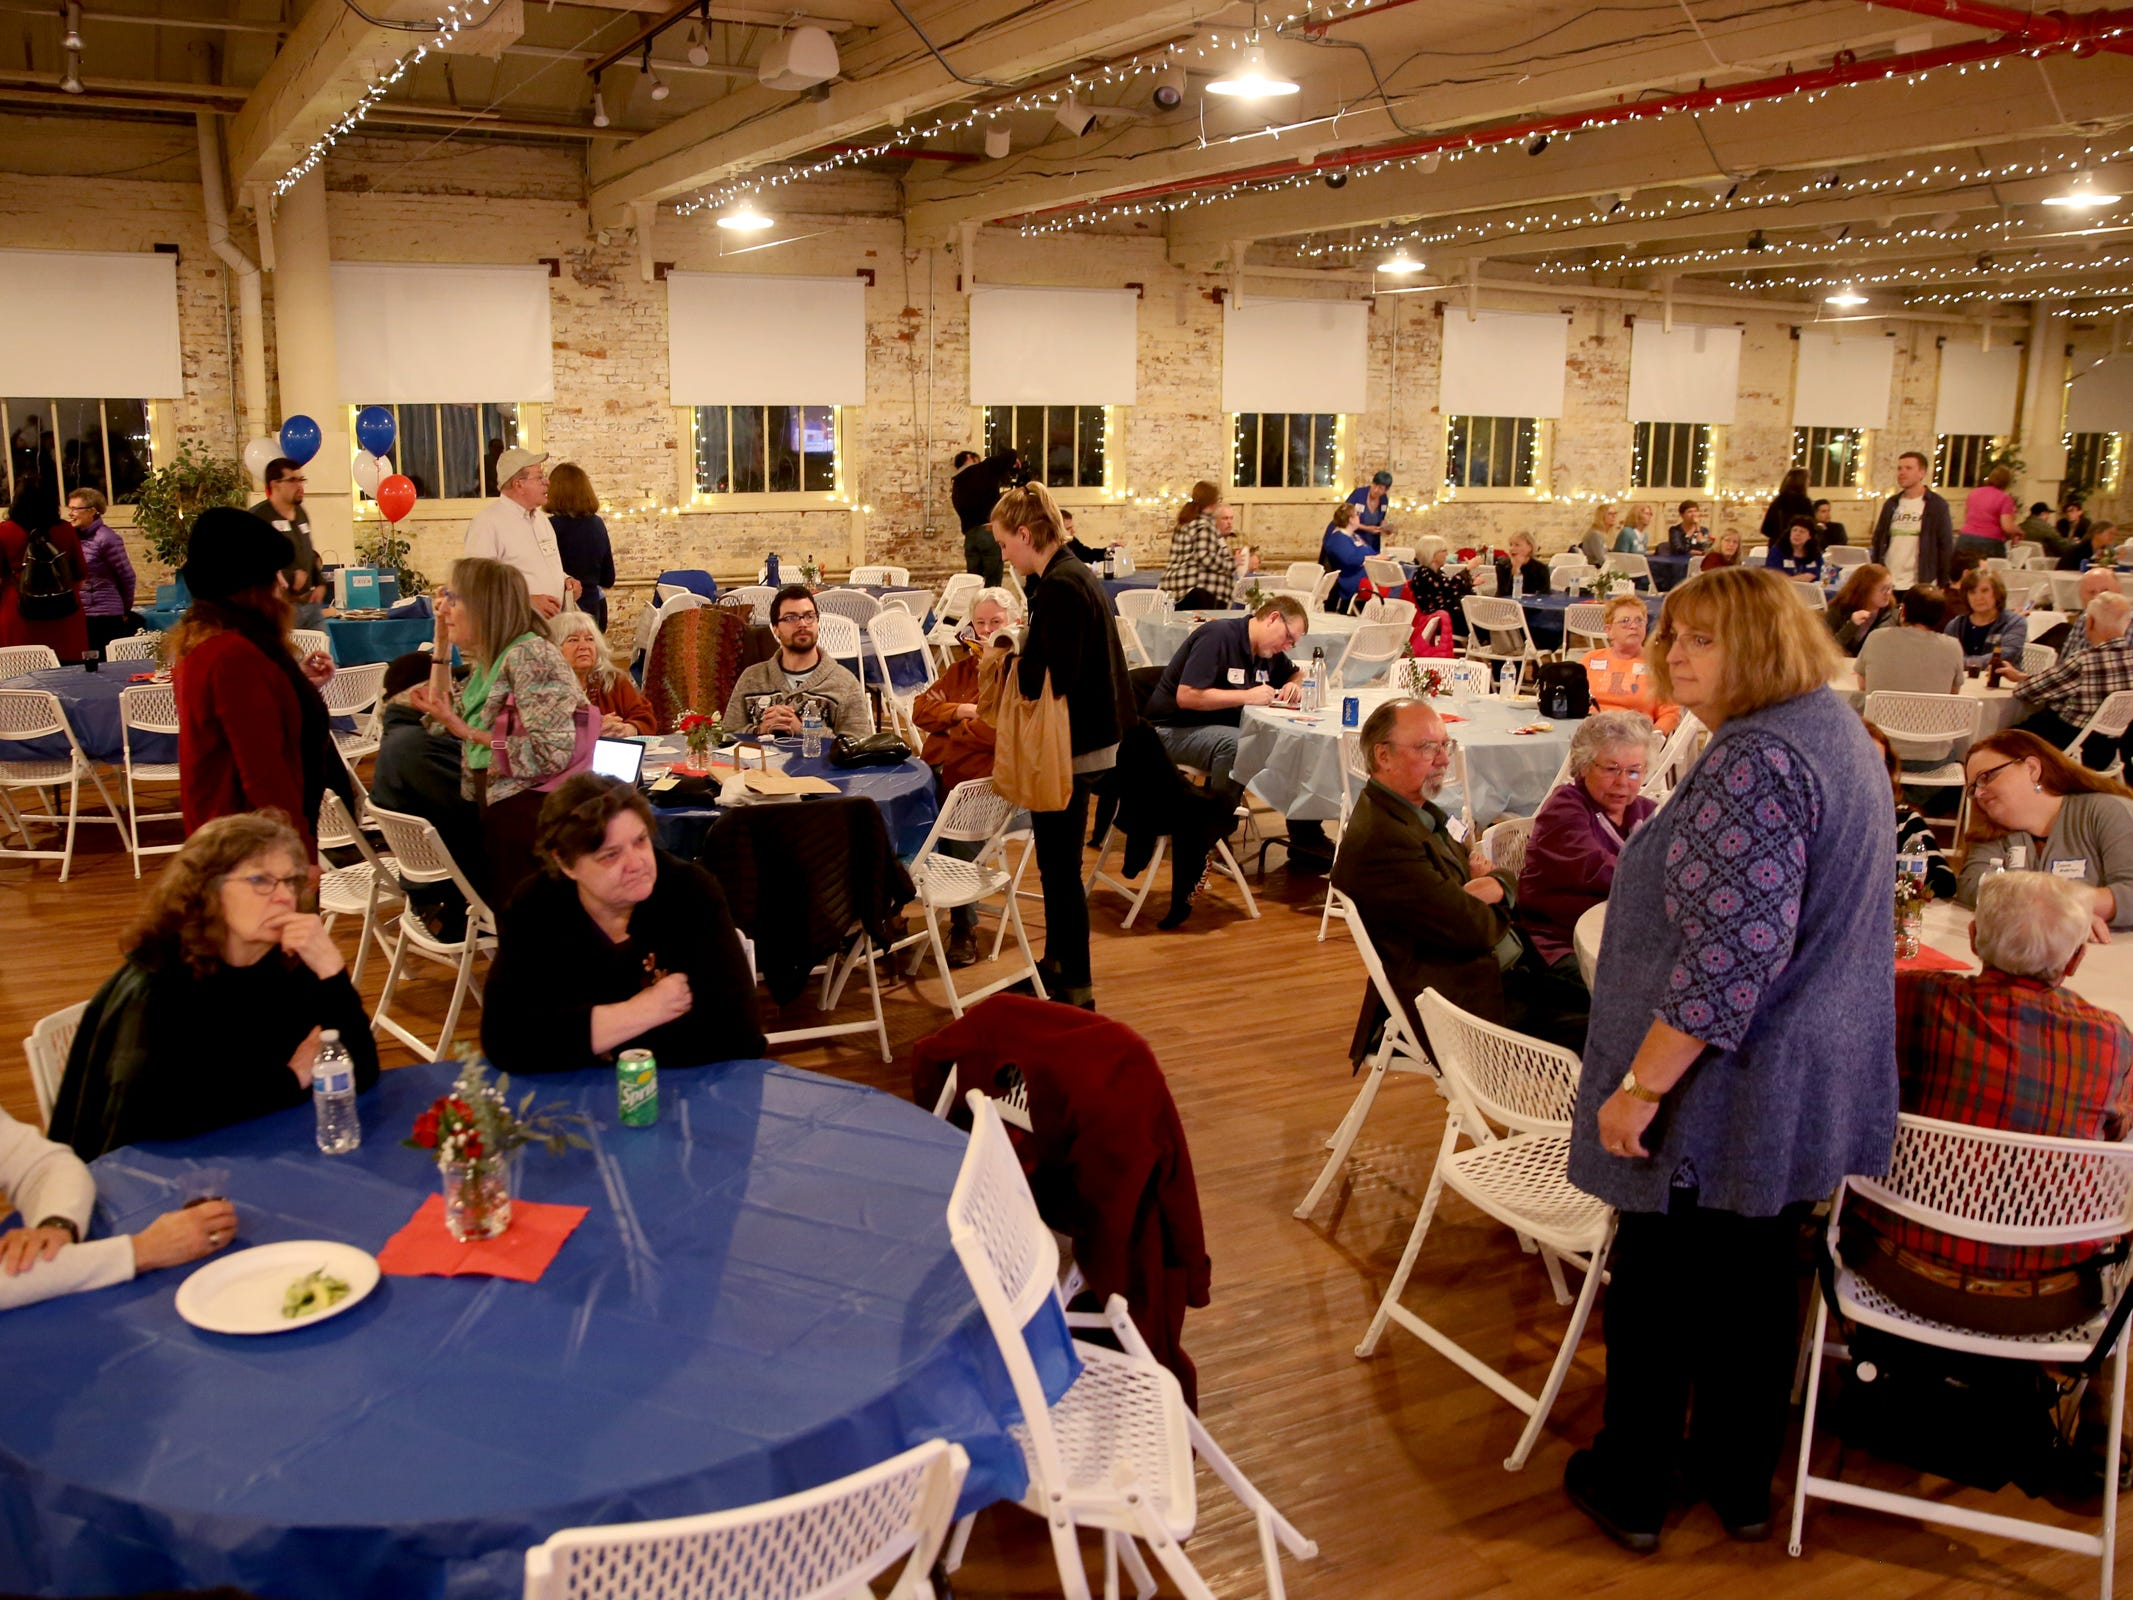 An election night party hosted by Marion County Democrats and Polk County Democrats at the Willamette Heritage Center in Salem on Tuesday, Nov. 6, 2018.